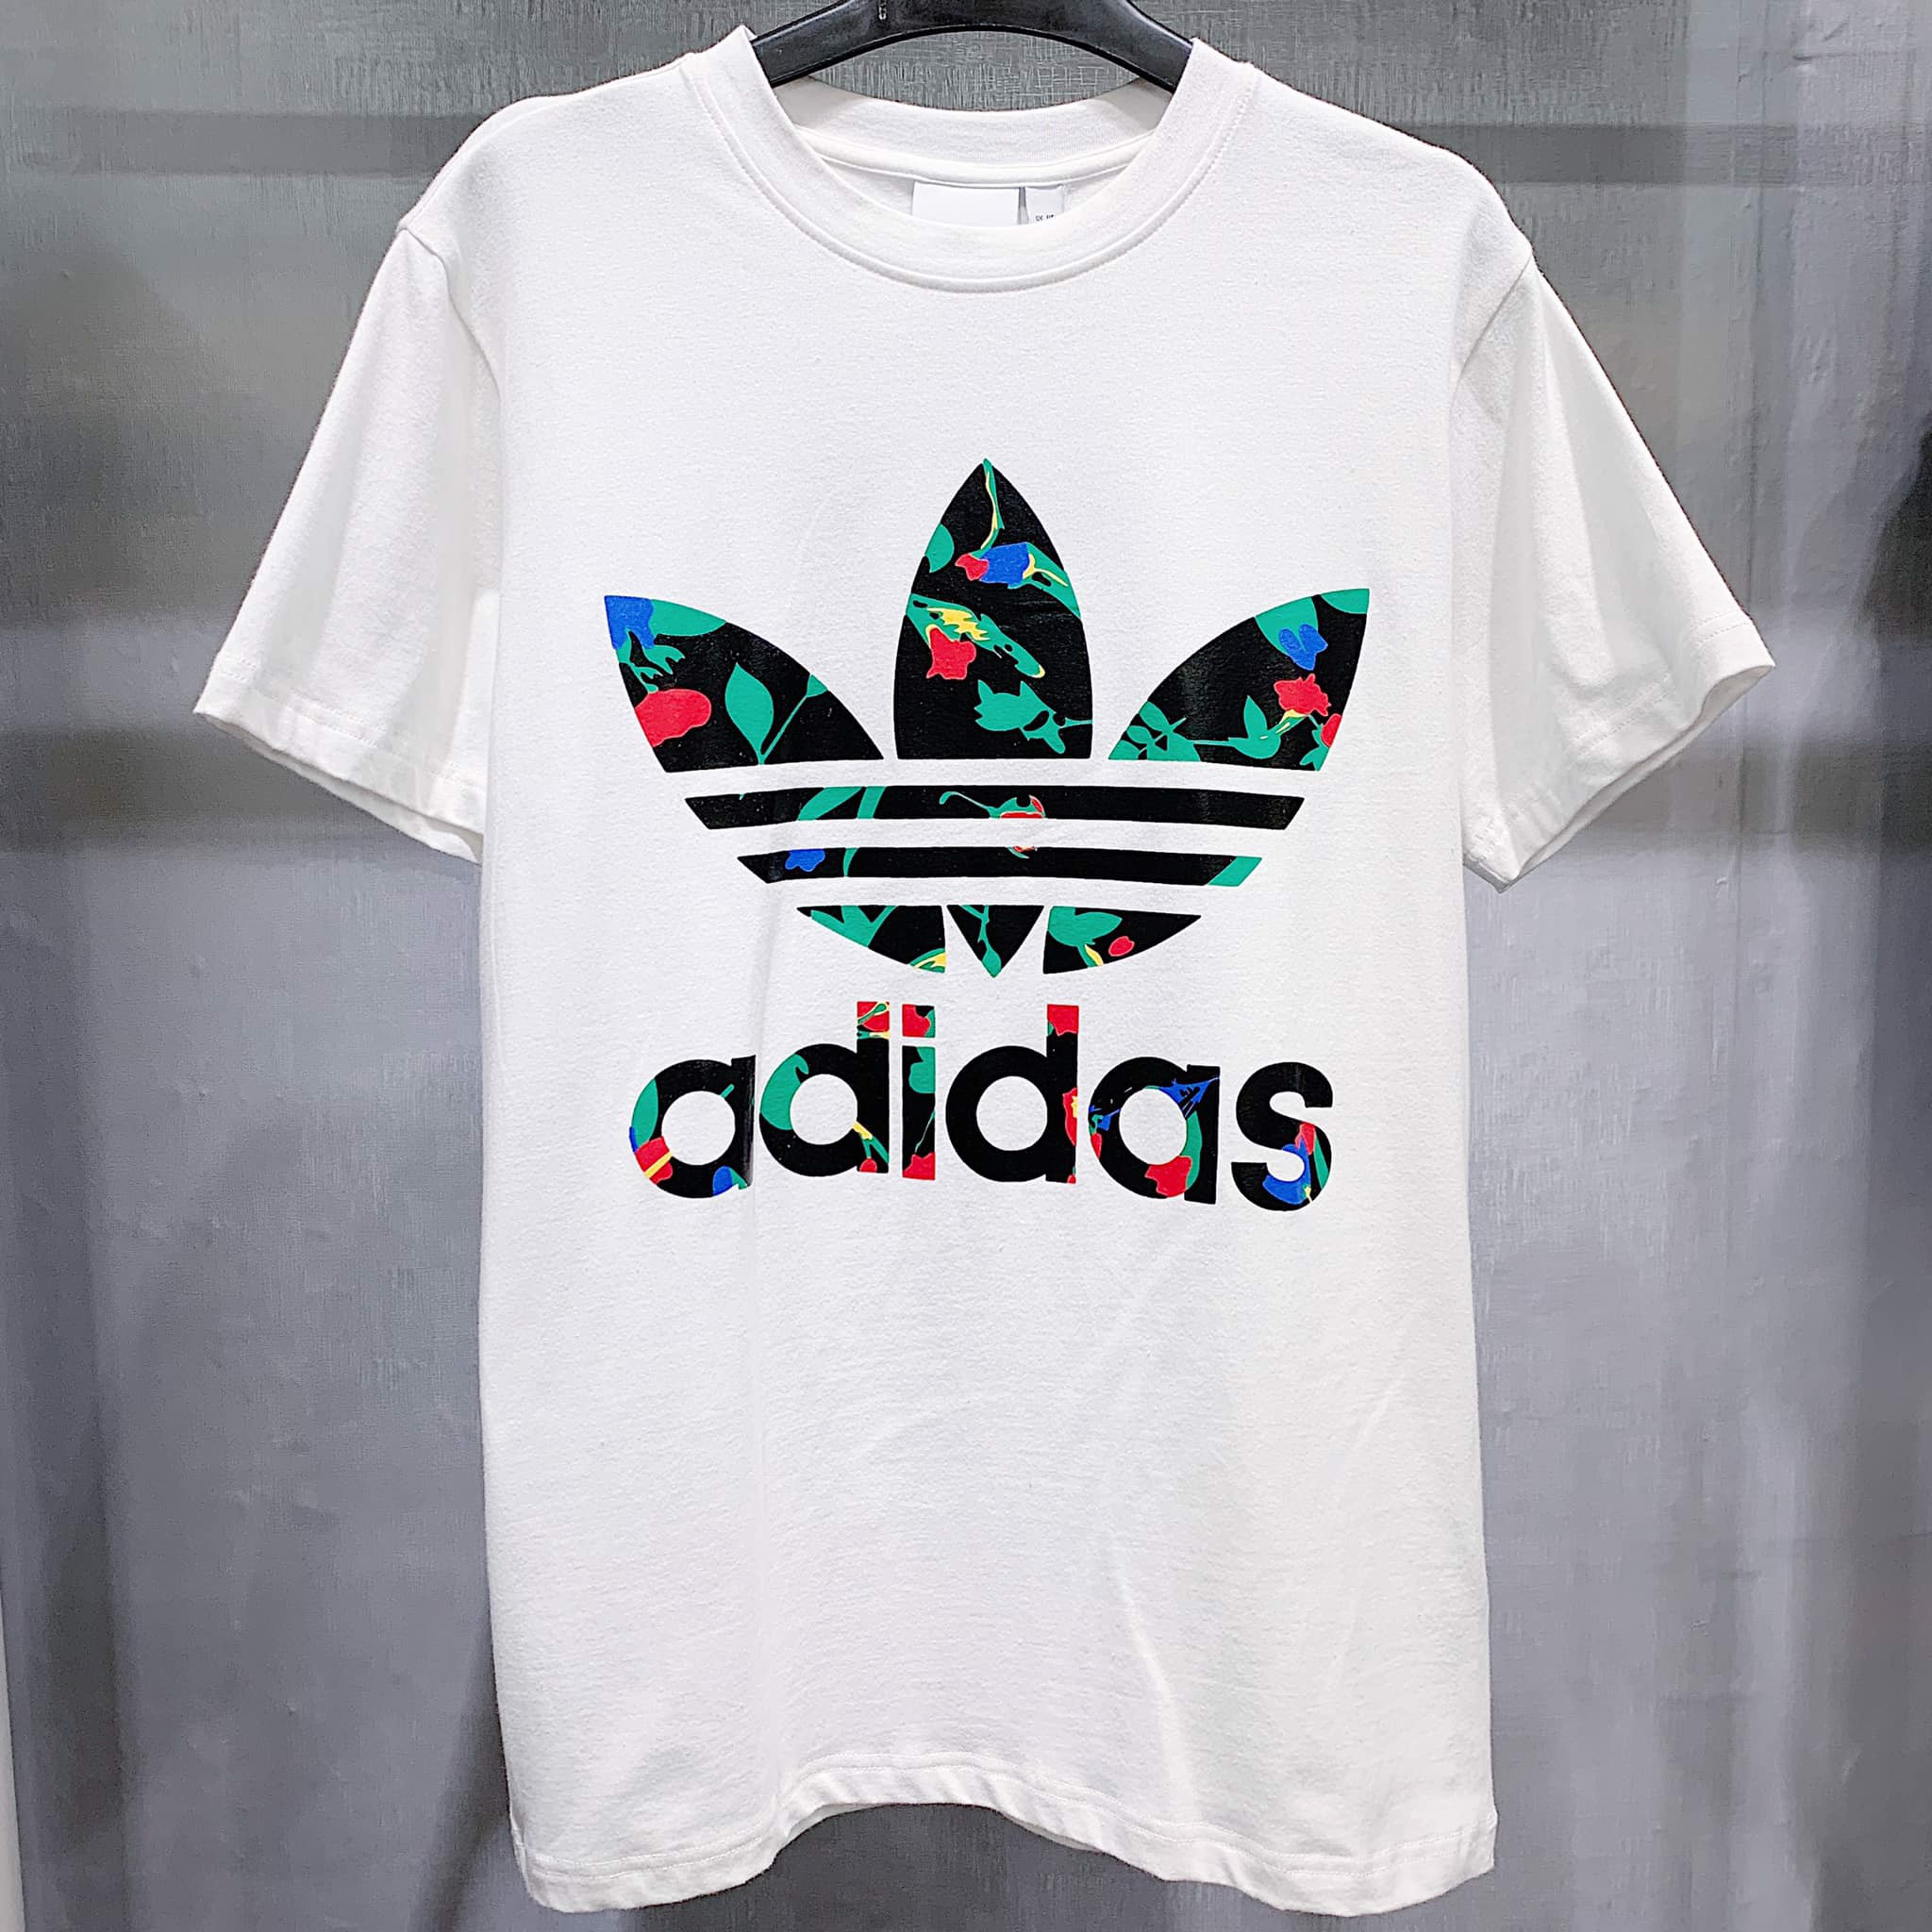 Big Trefoil Tee White / Black FL0027